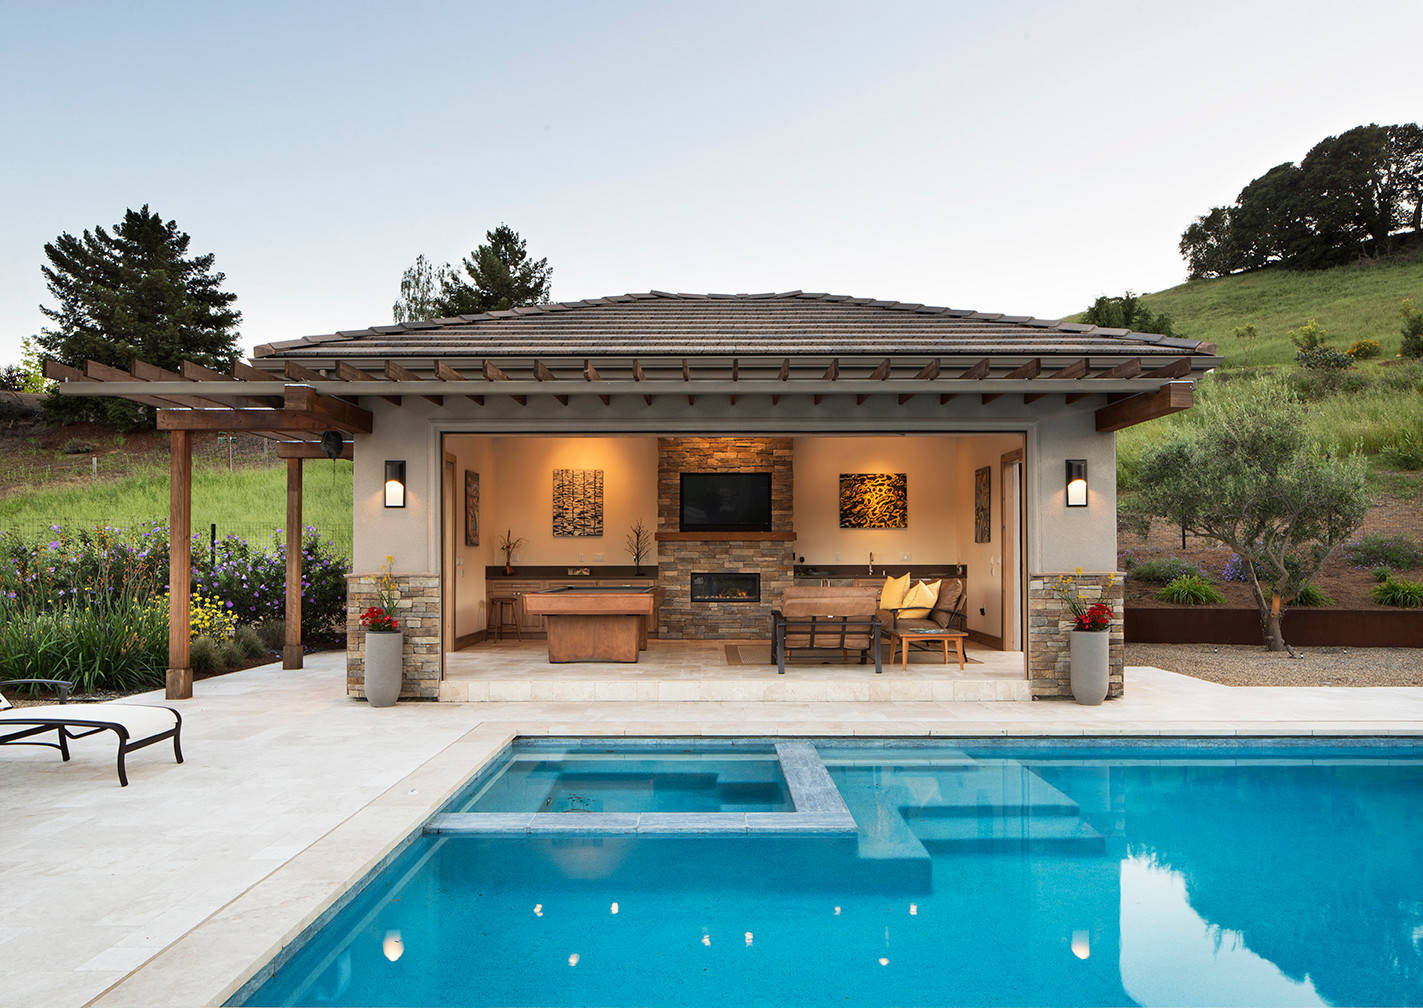 75 Beautiful Pool House Pictures Ideas December 2020 Houzz